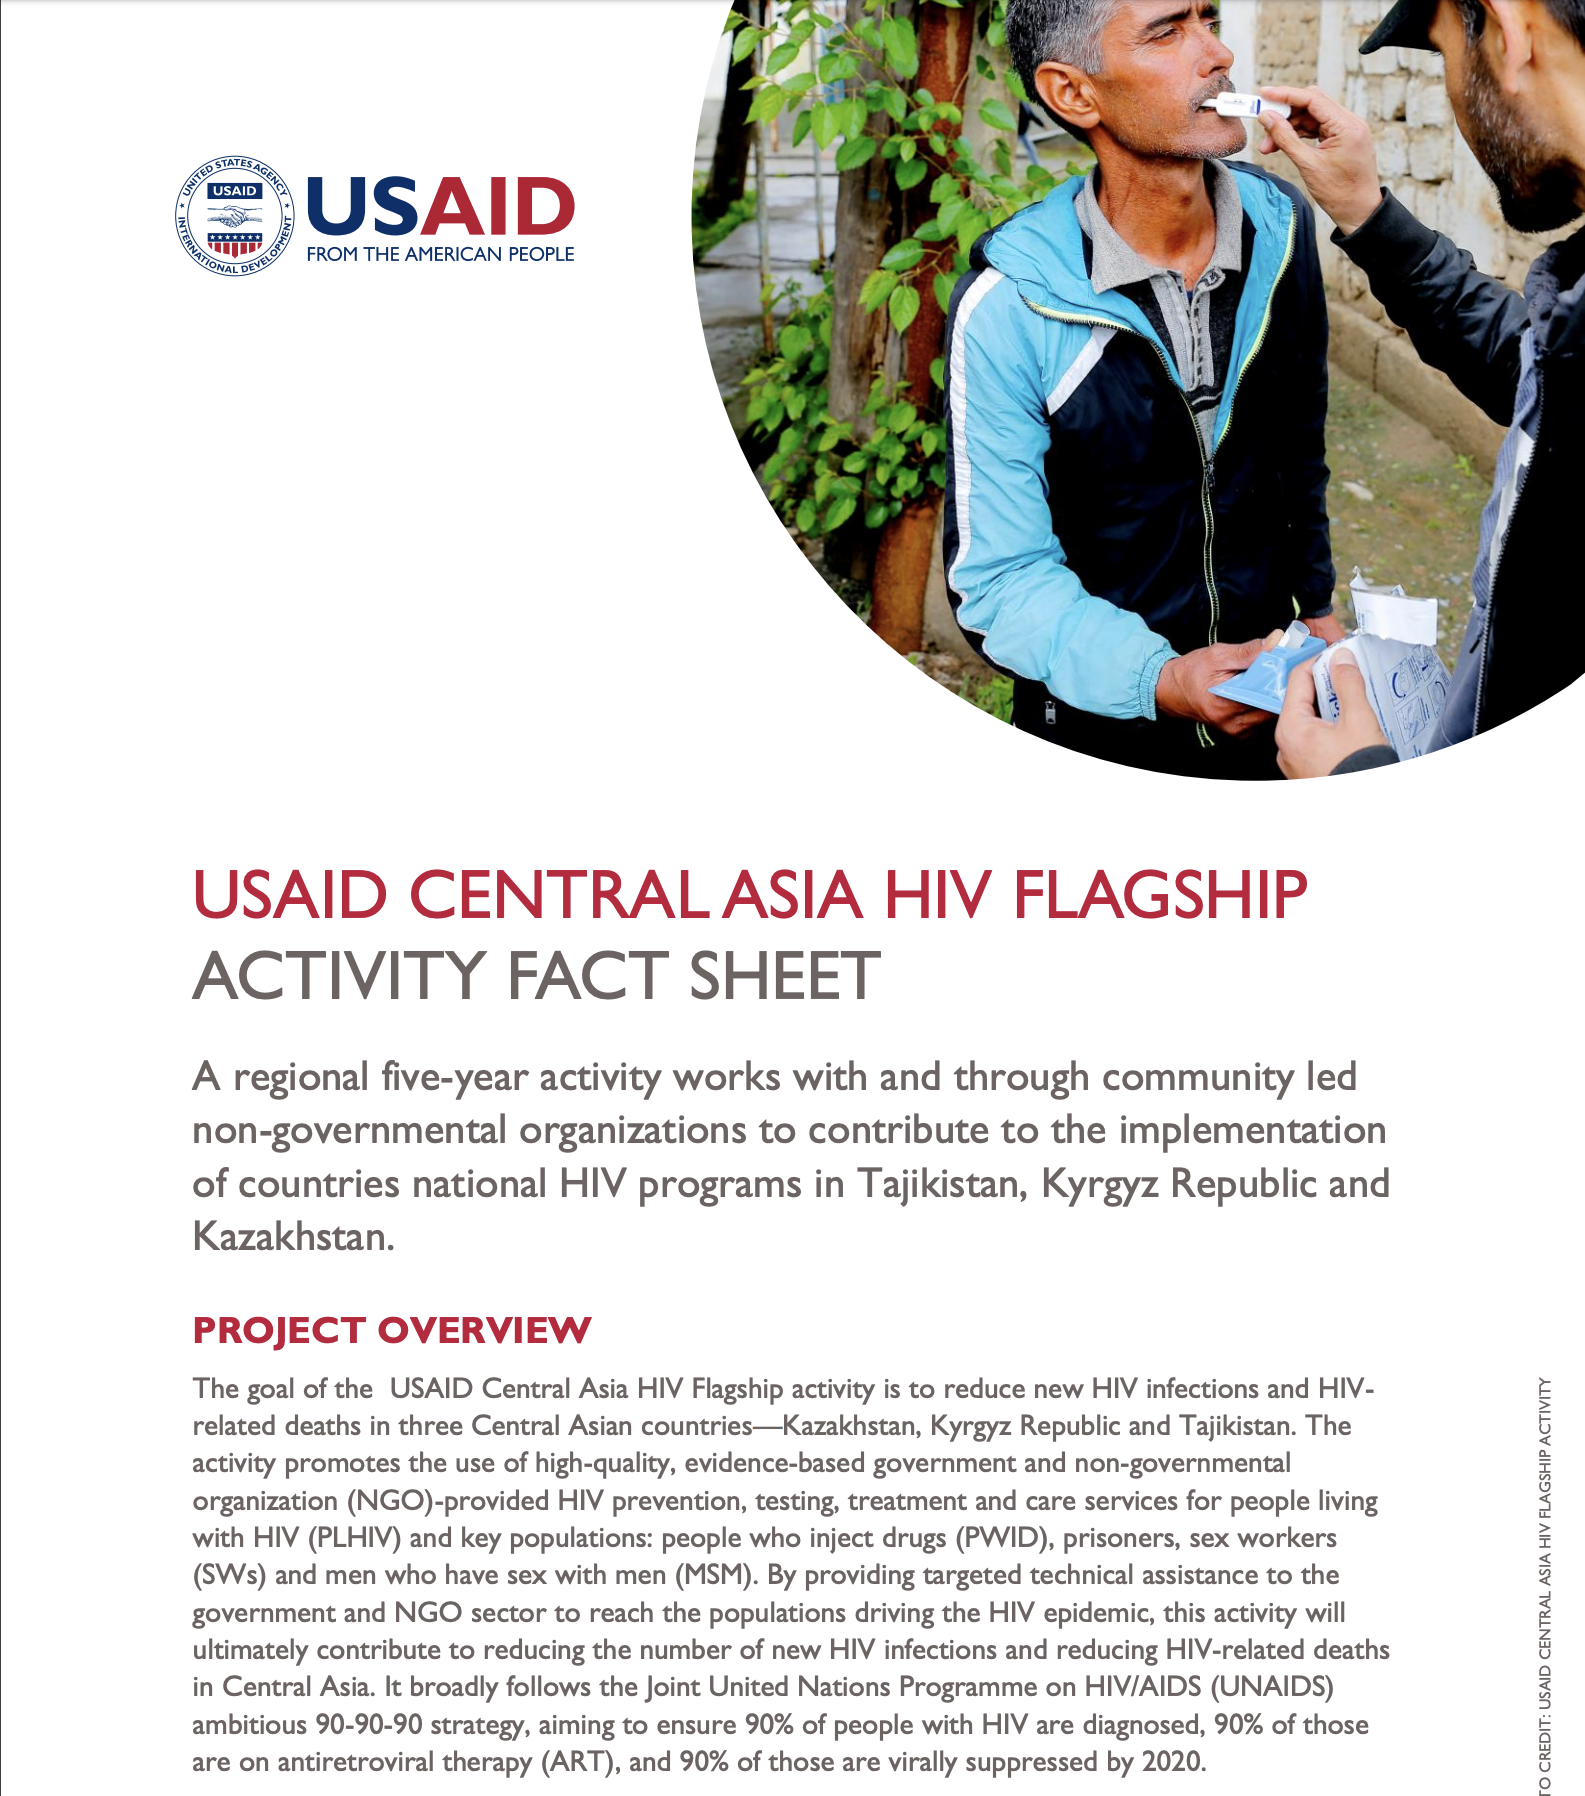 USAID Central Asia HIV Flagship Activity